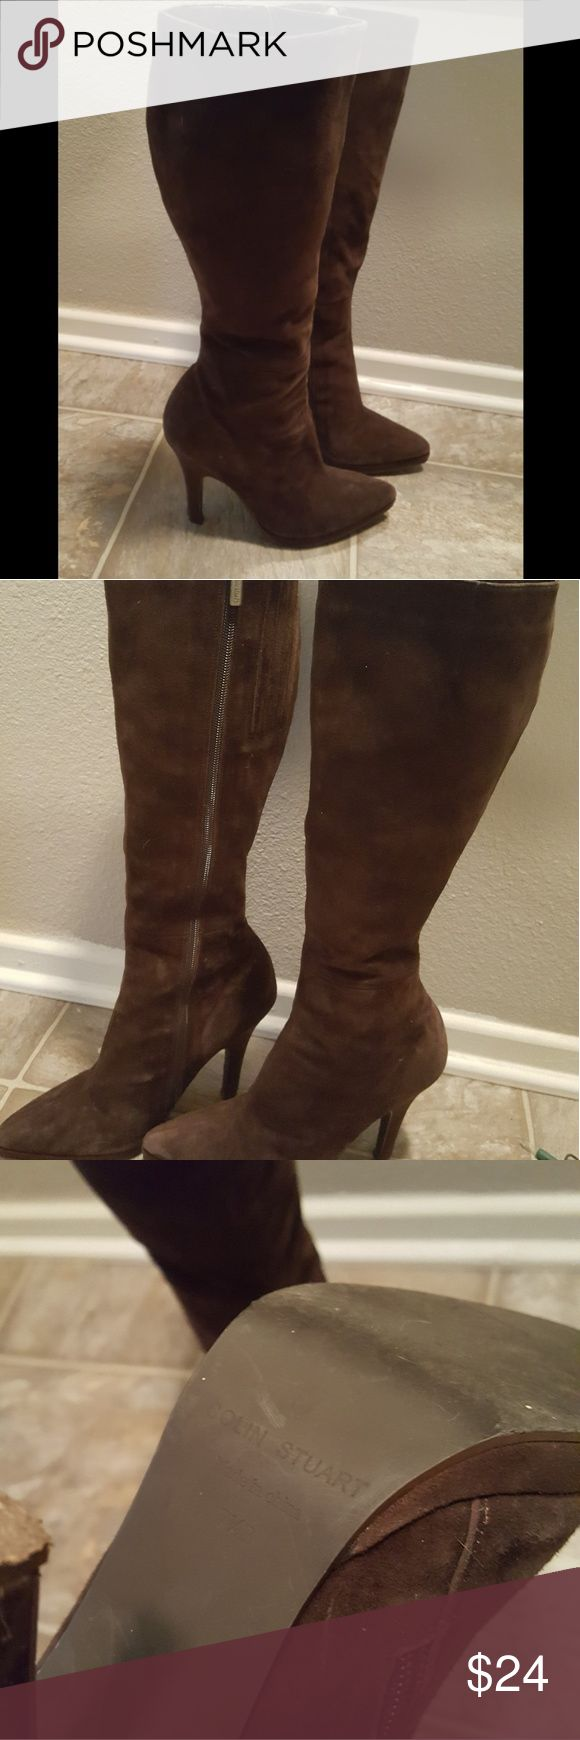 Colin Stuart Brown Suede like boots 7.5 All man made material. Some lights scuffs otherwise good condition Colin Stuart Shoes Heeled Boots